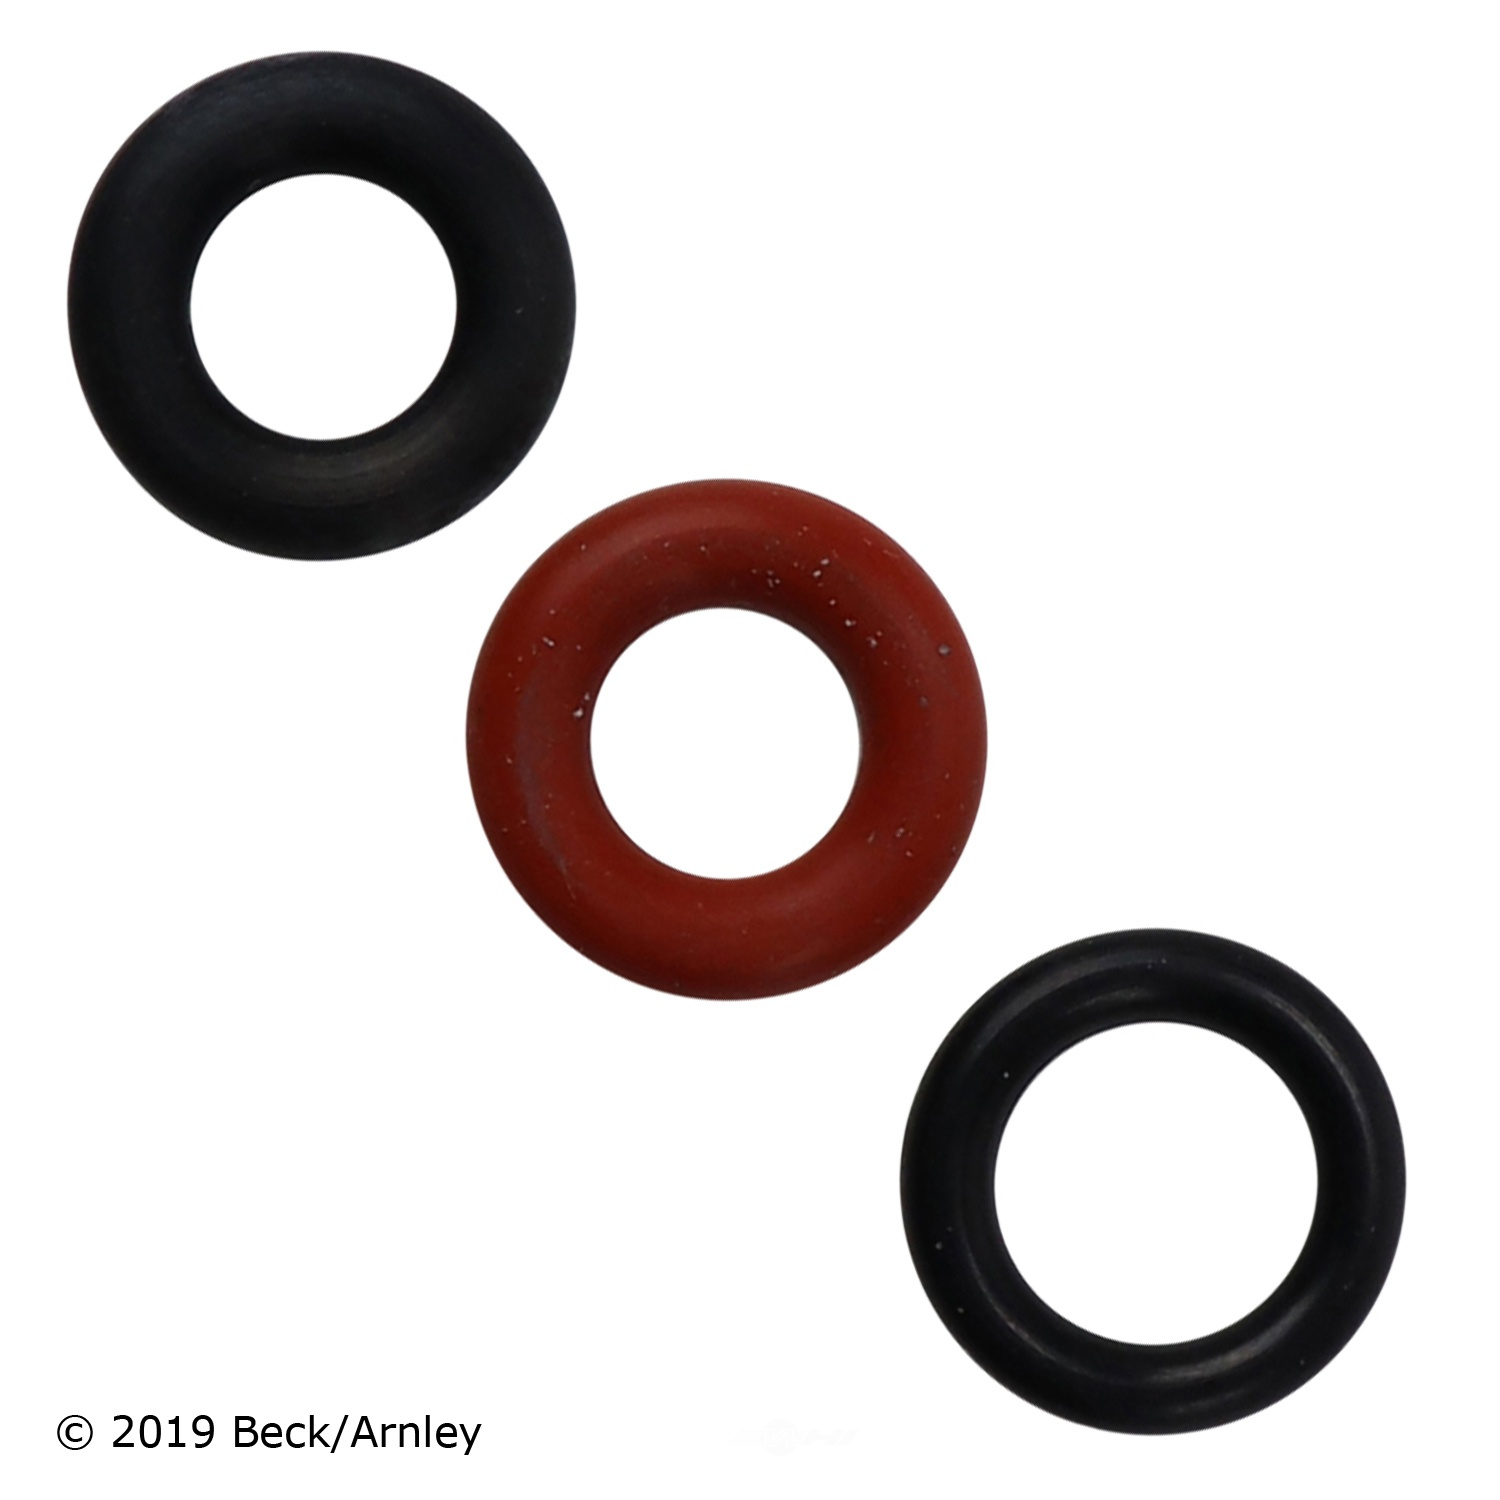 BECK/ARNLEY - Fuel Injection Nozzle O-Ring Kit - BAR 158-0902